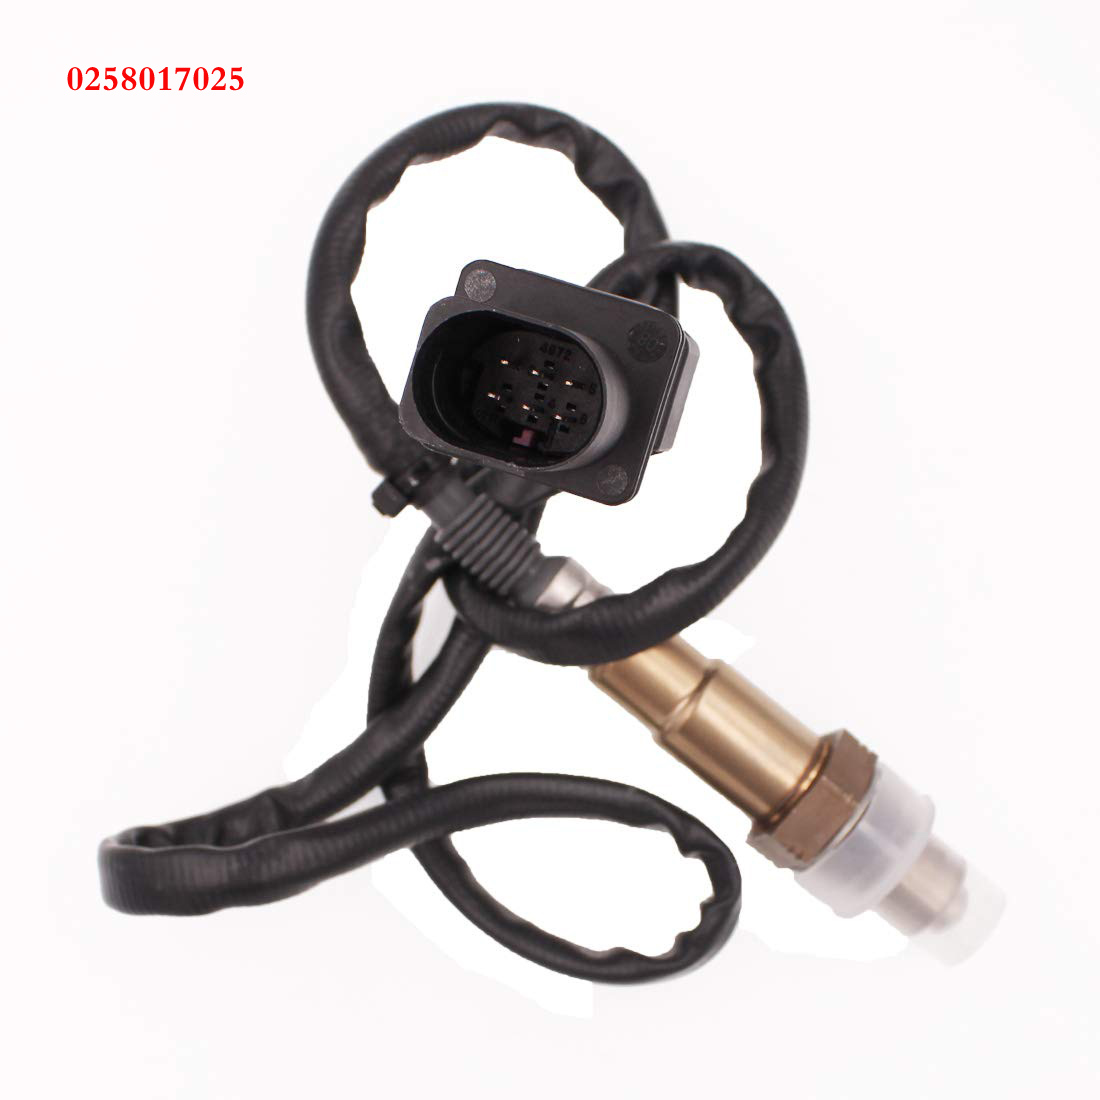 Oxygen Sensor Wideband 5 Wire Replacement For Ford Chevy Honda 0258017025 LSU4.9 17025